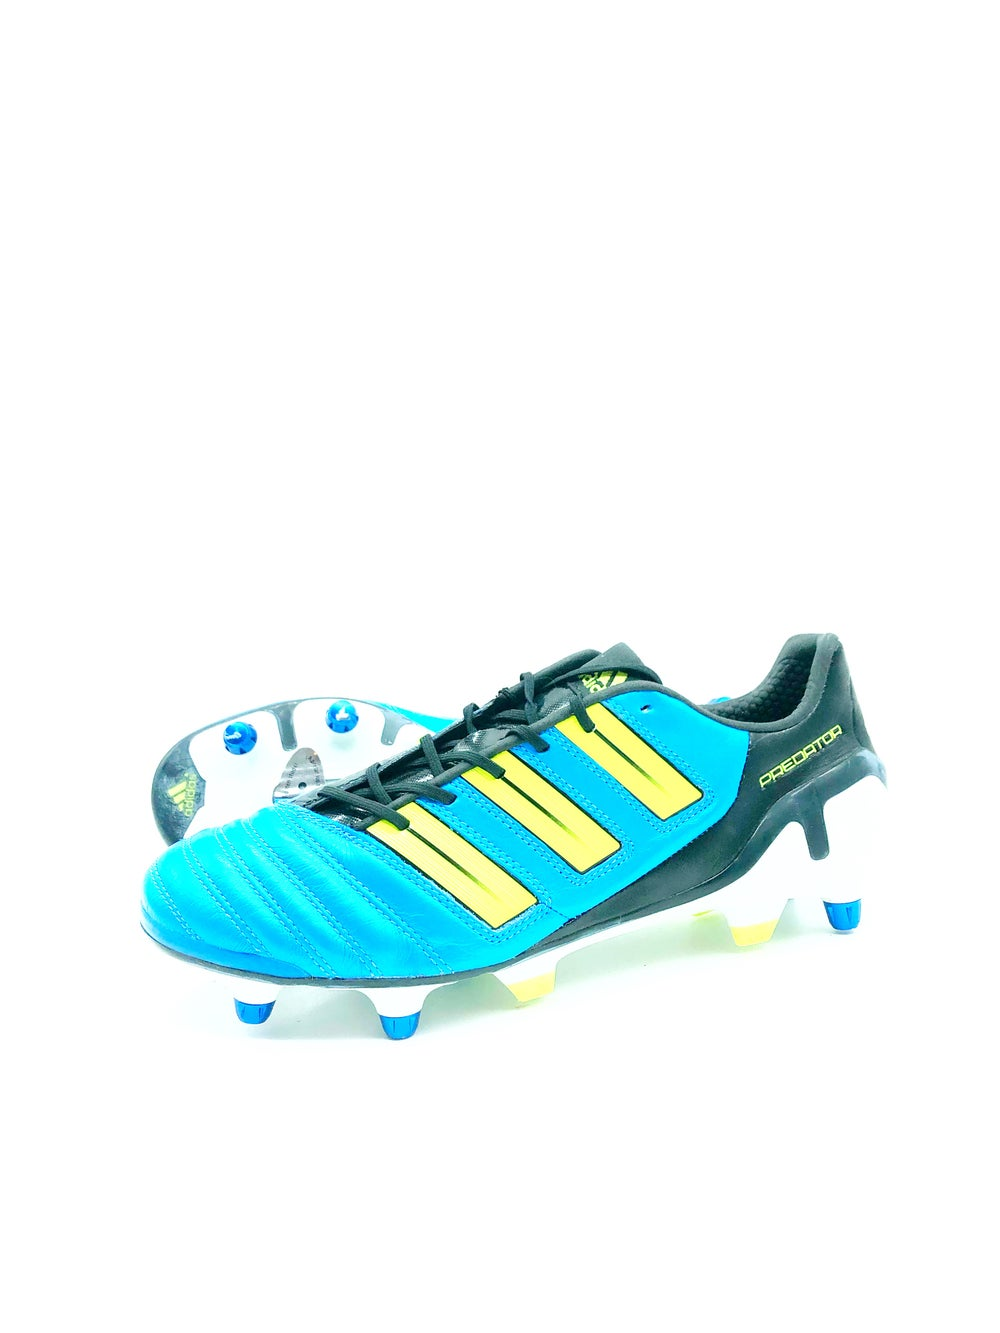 Image of Adidas Predator adipower SG BLUE